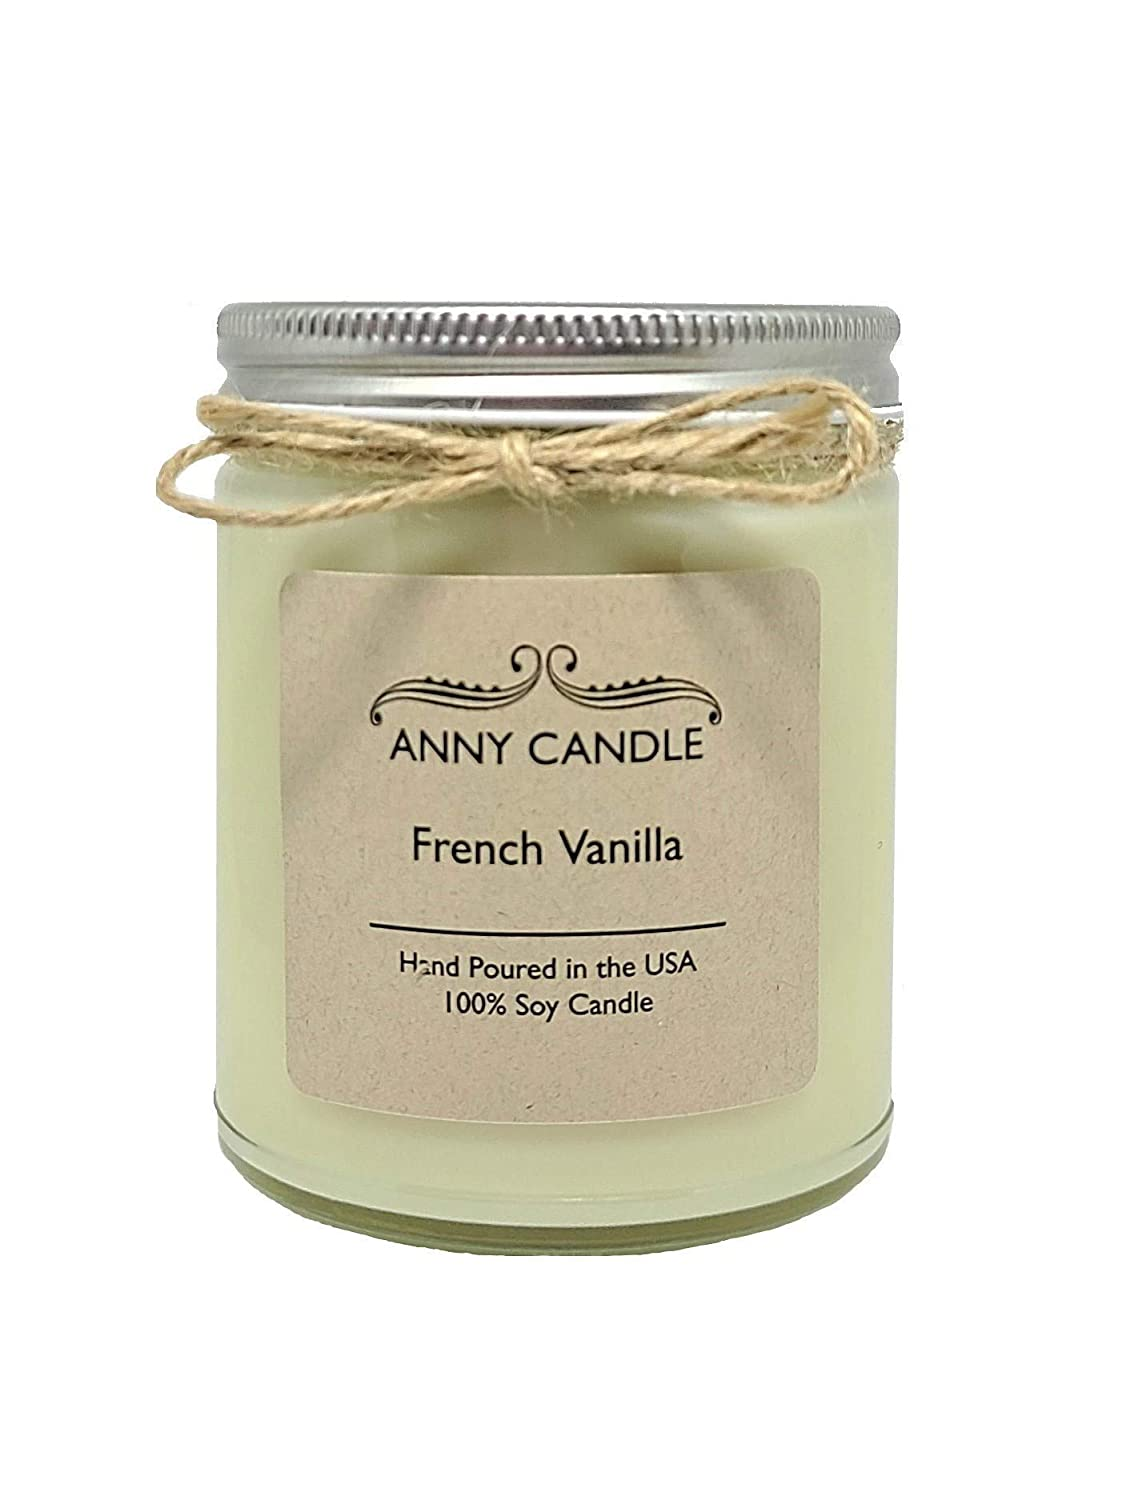 Amazon Com Anny Candle French Vanilla Scented 9 Oz Straight Sided Jar Candle 100 Soy Wax Handmade